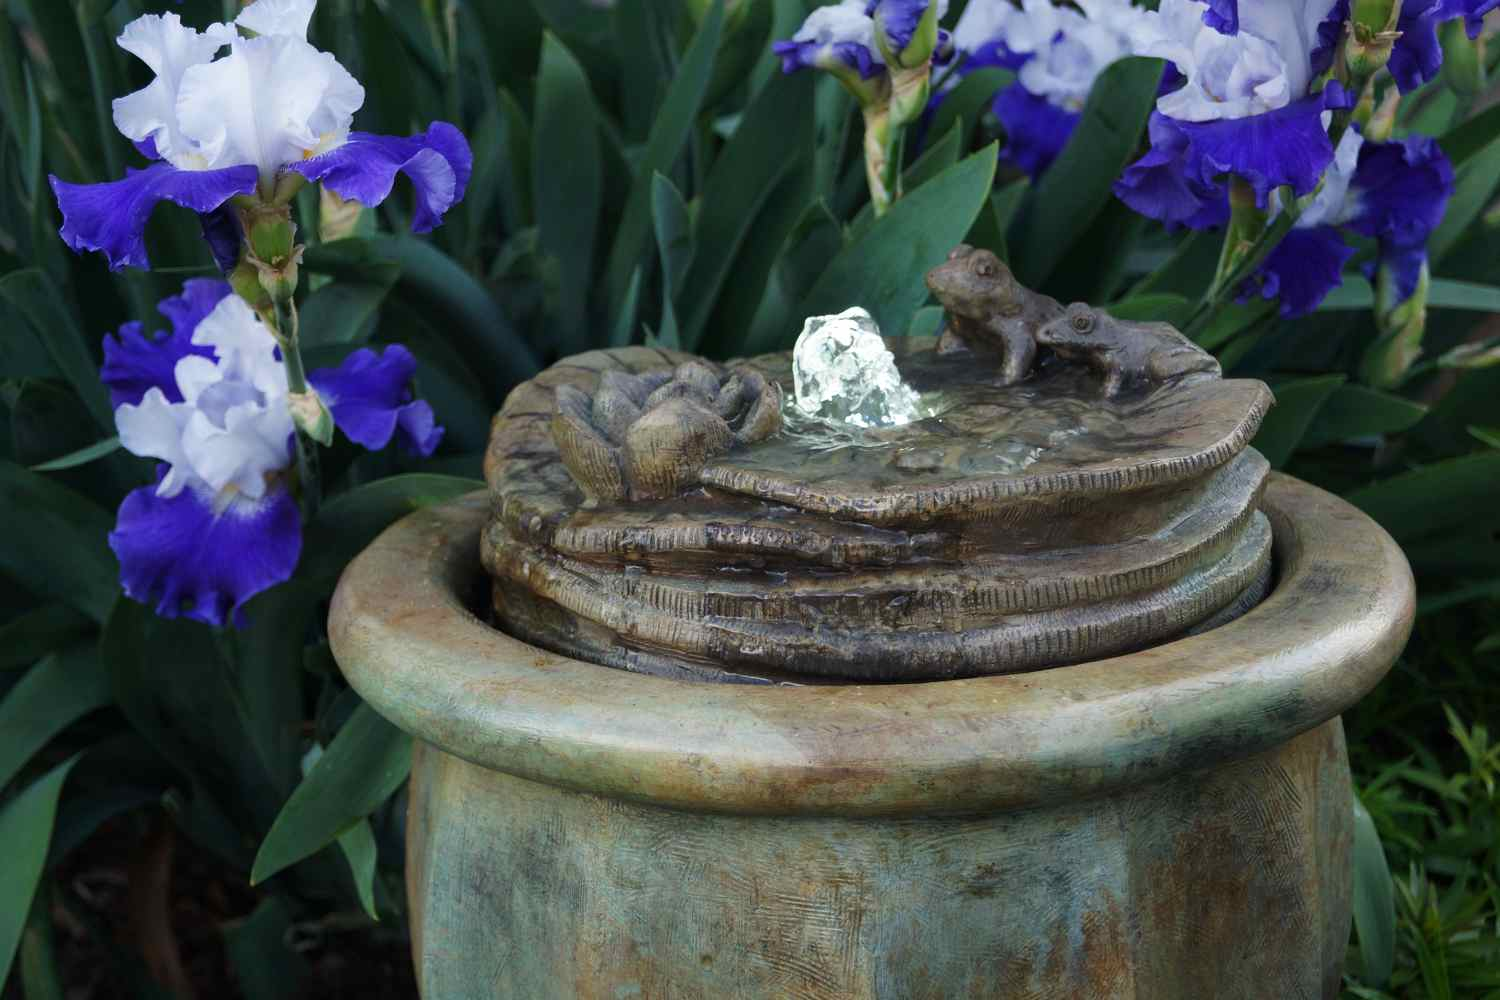 Frogs Patio Bubbler Fountain Maison Decor